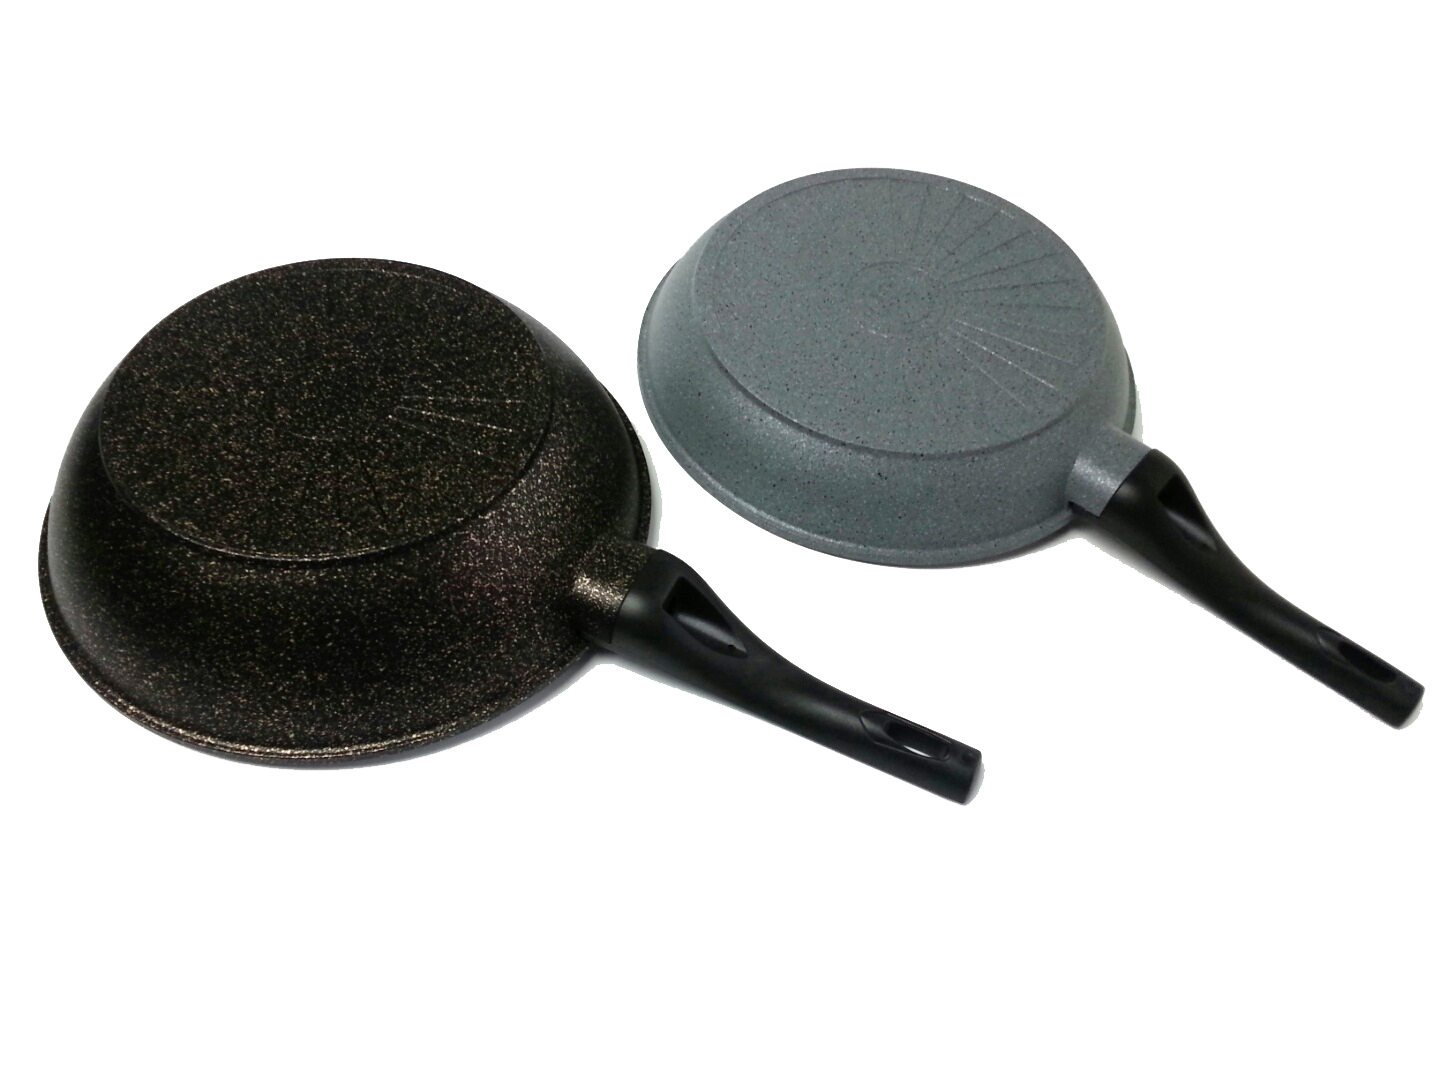 Granite wok and frying pan.png